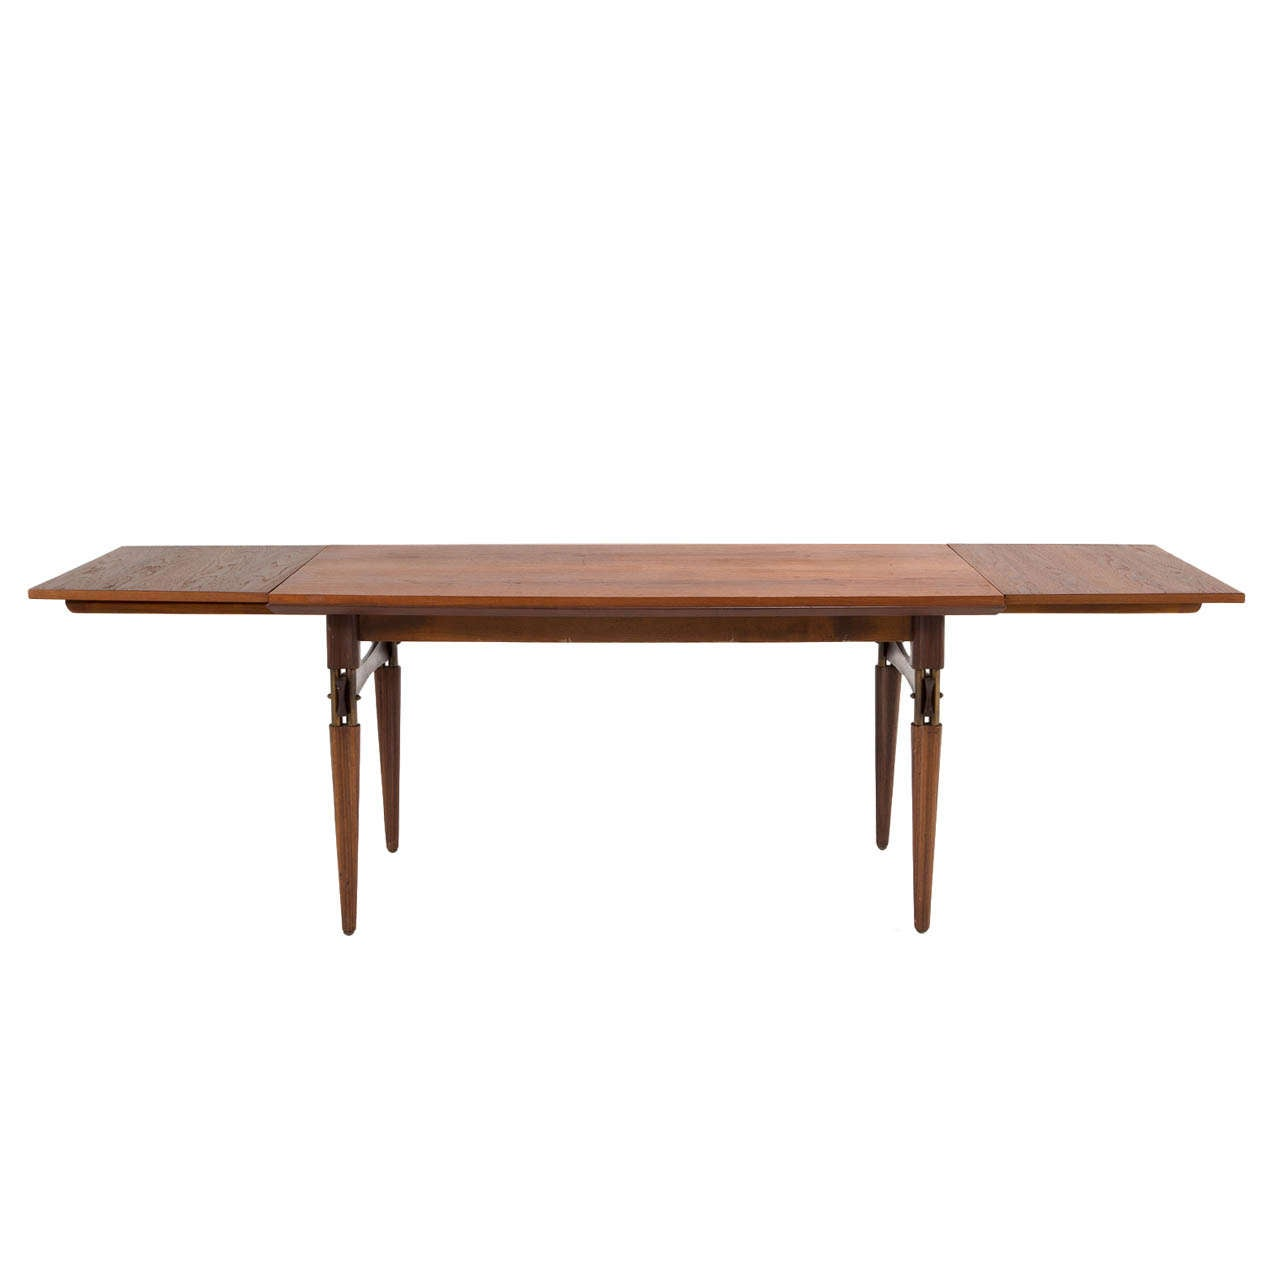 Italian Extendable Dining Table Refined Italian Teak Extendable Dining Table With Brass Accents